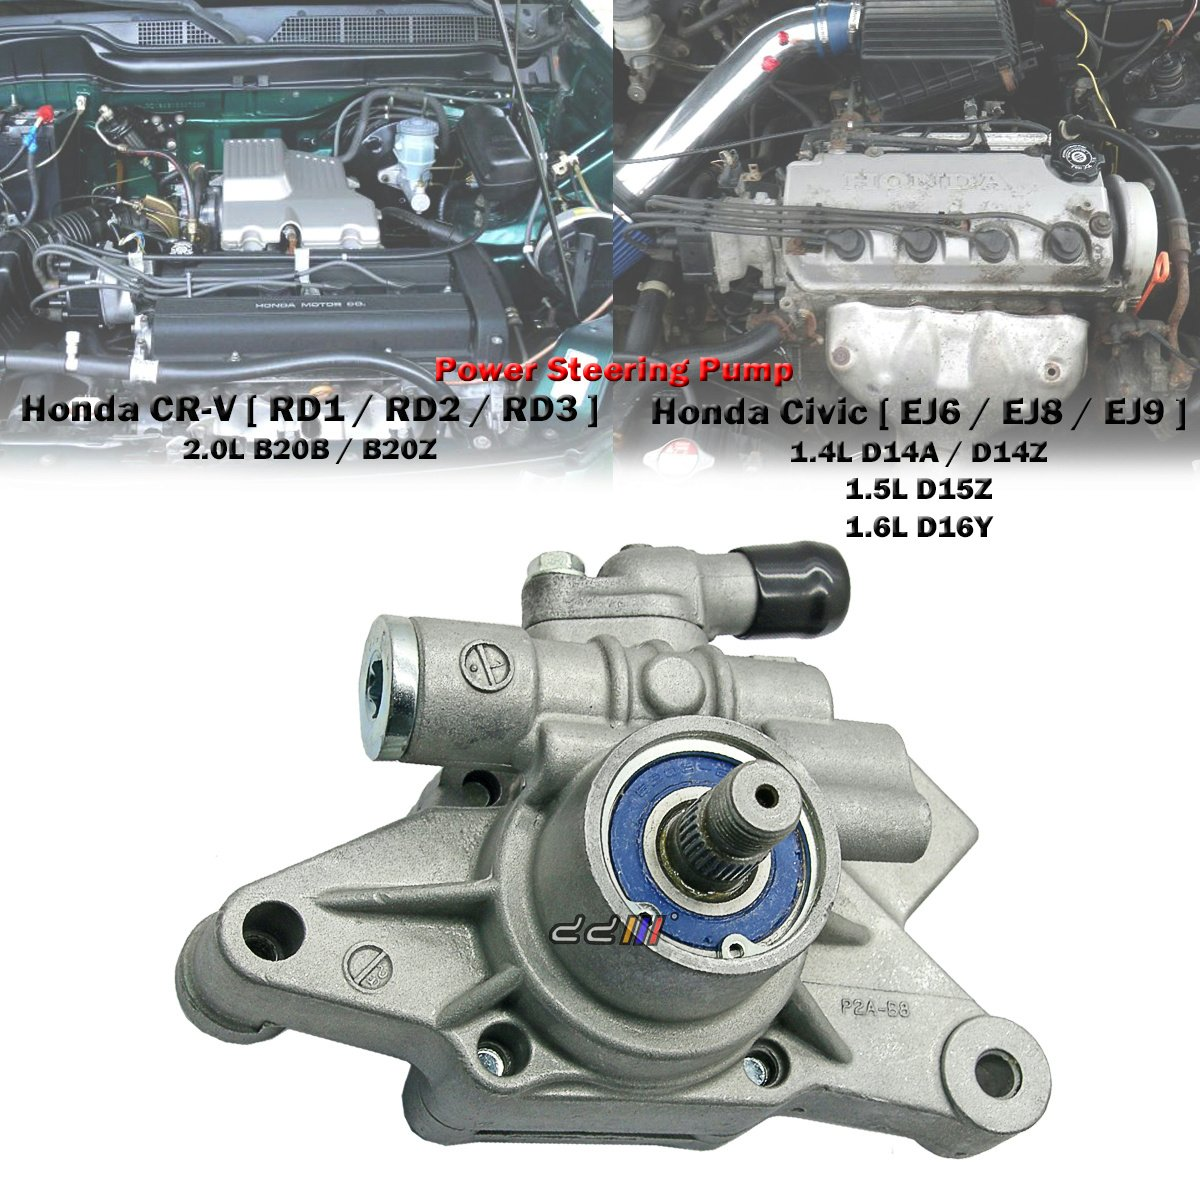 Power Steering Pump For Honda Cr V Crv Rd1 Rd2 Rd3 20l 2001 Parts Discount Factory Oem And B20b B20z 1997 01 Civic Ej6 Ej8 D16y7 D16y8 Acura El 1996 00 Automotive